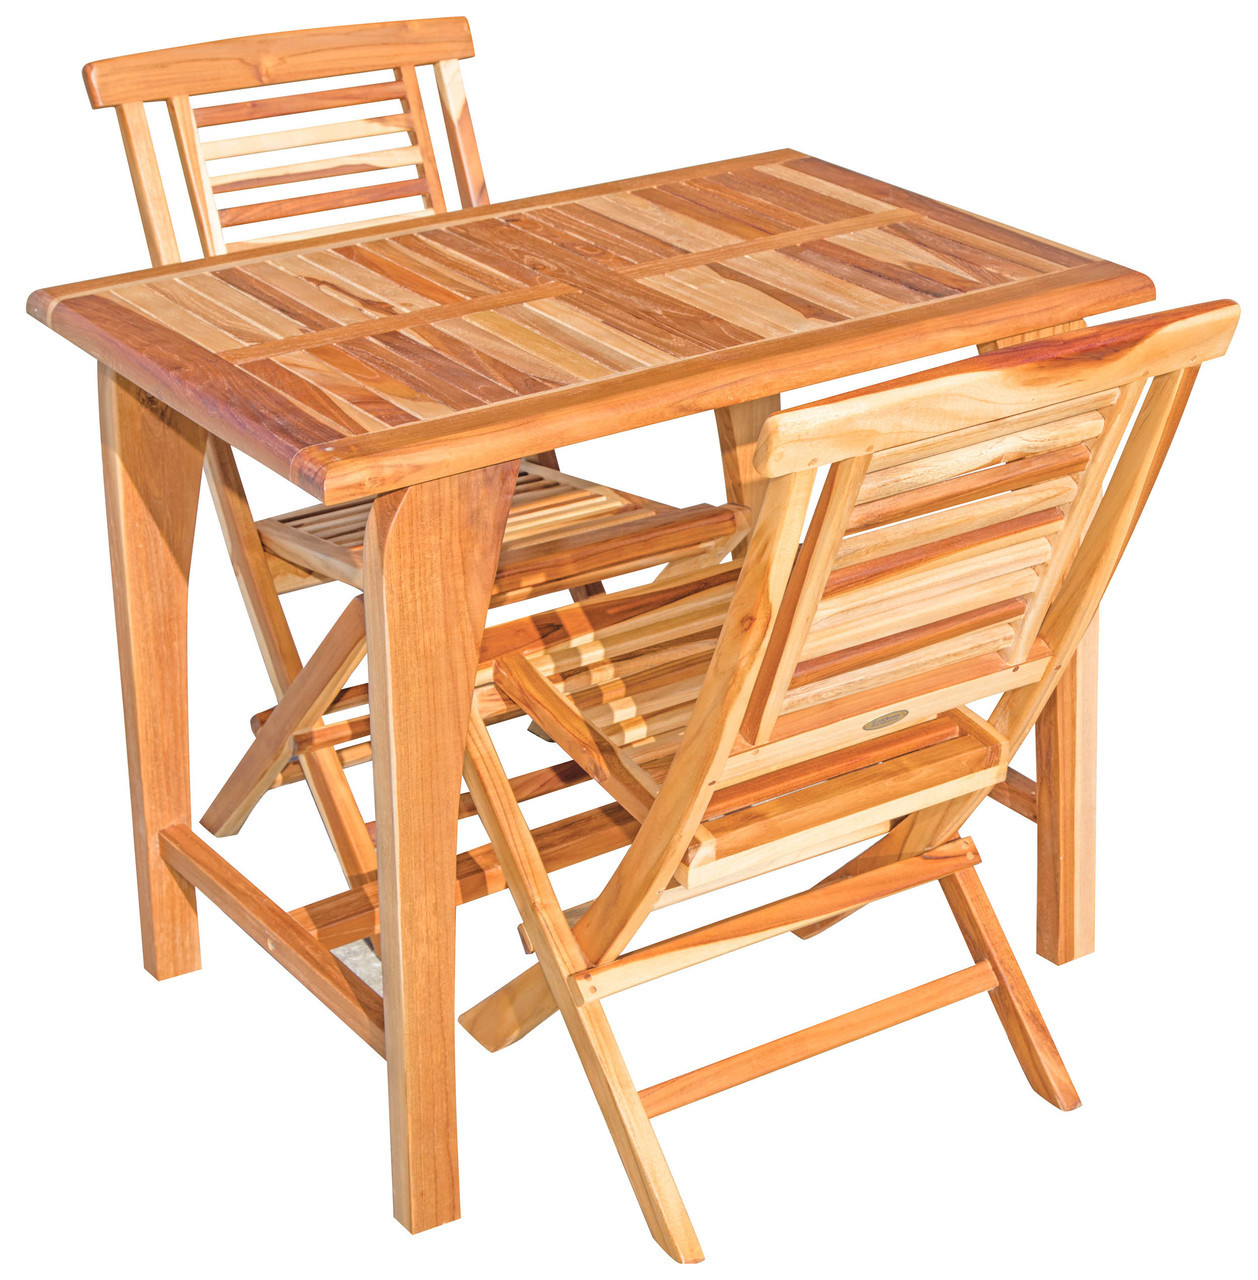 """EcoDecors Tranquility 35"""" x 23.5"""" x 30"""" Teak Wood Table in EarthyTeak Finish"""